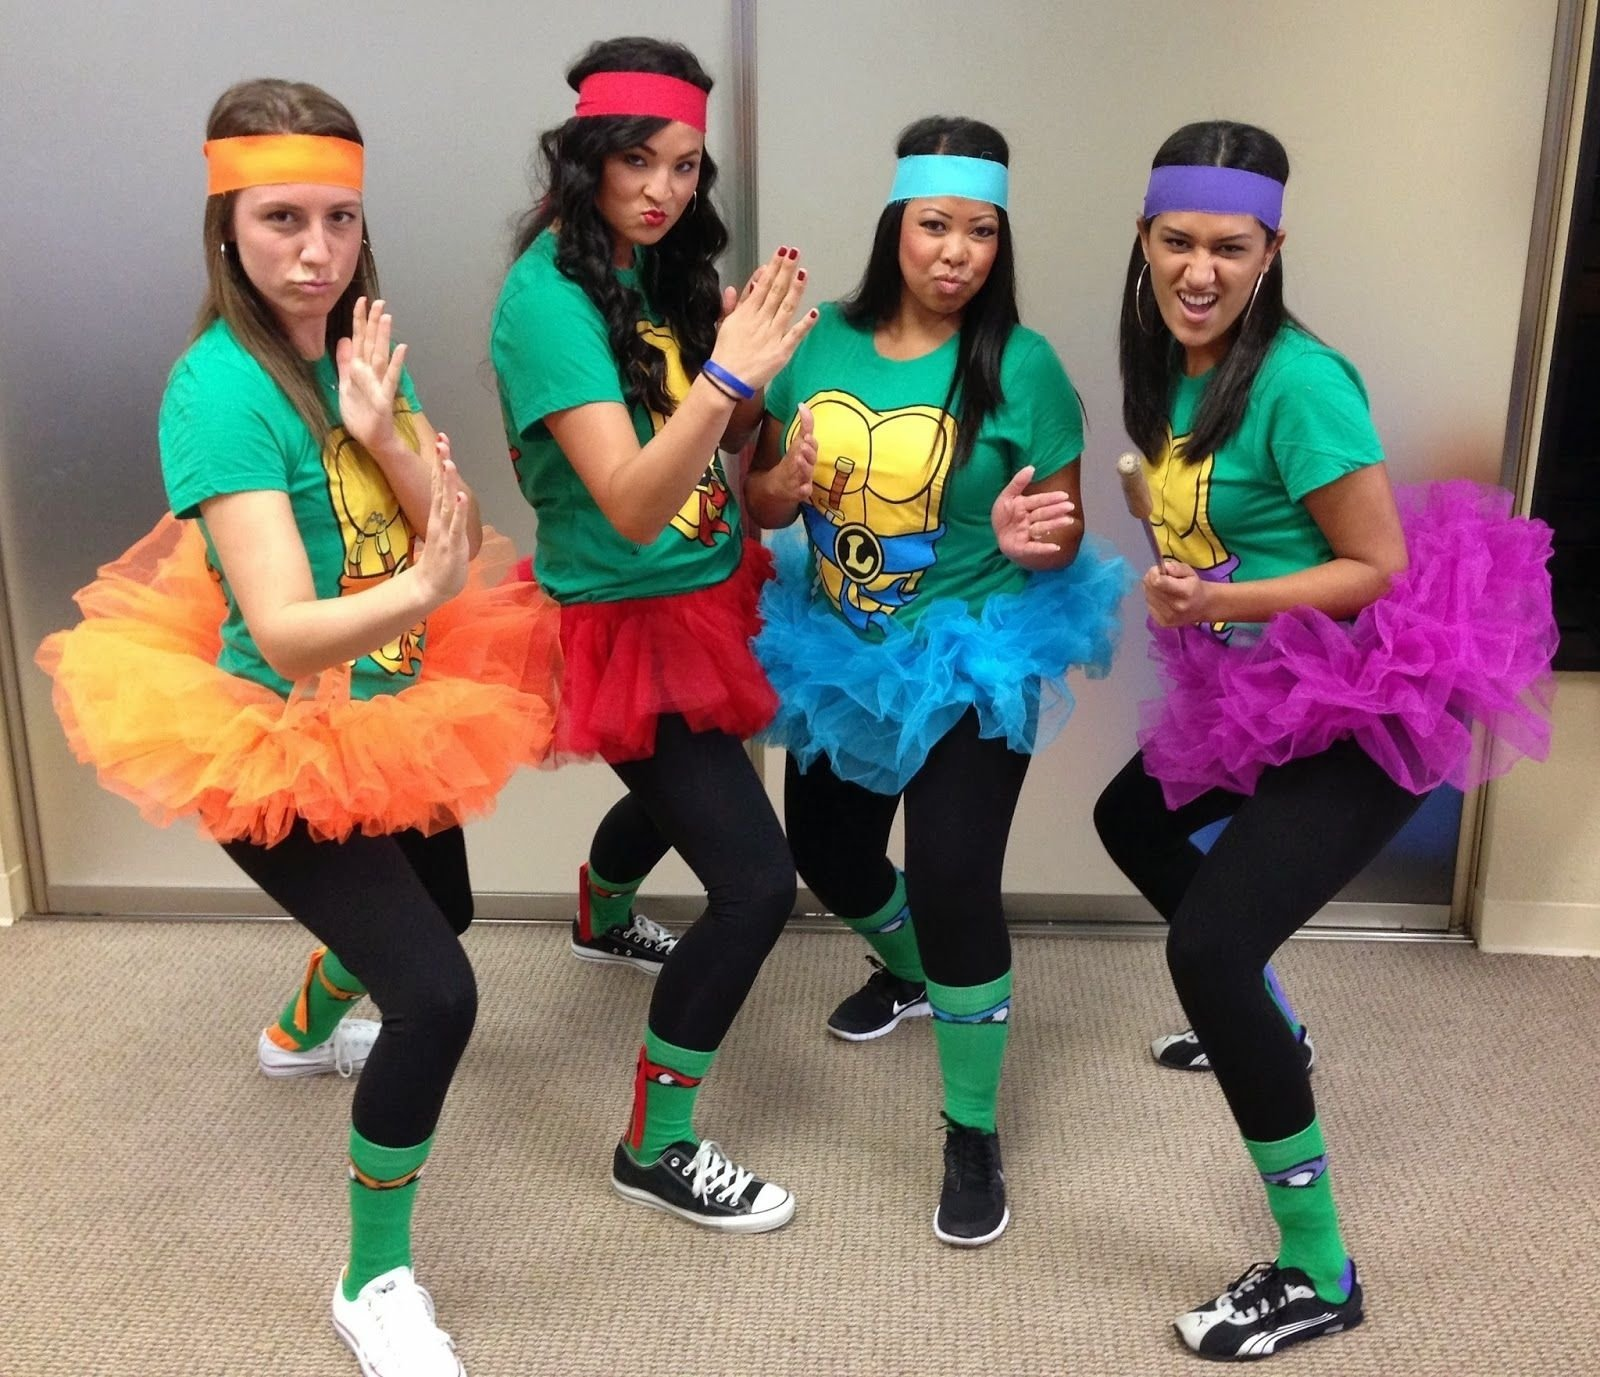 10 Ideal High School Halloween Costume Ideas 26 90s group halloween costumes you and your squad should dress up 11